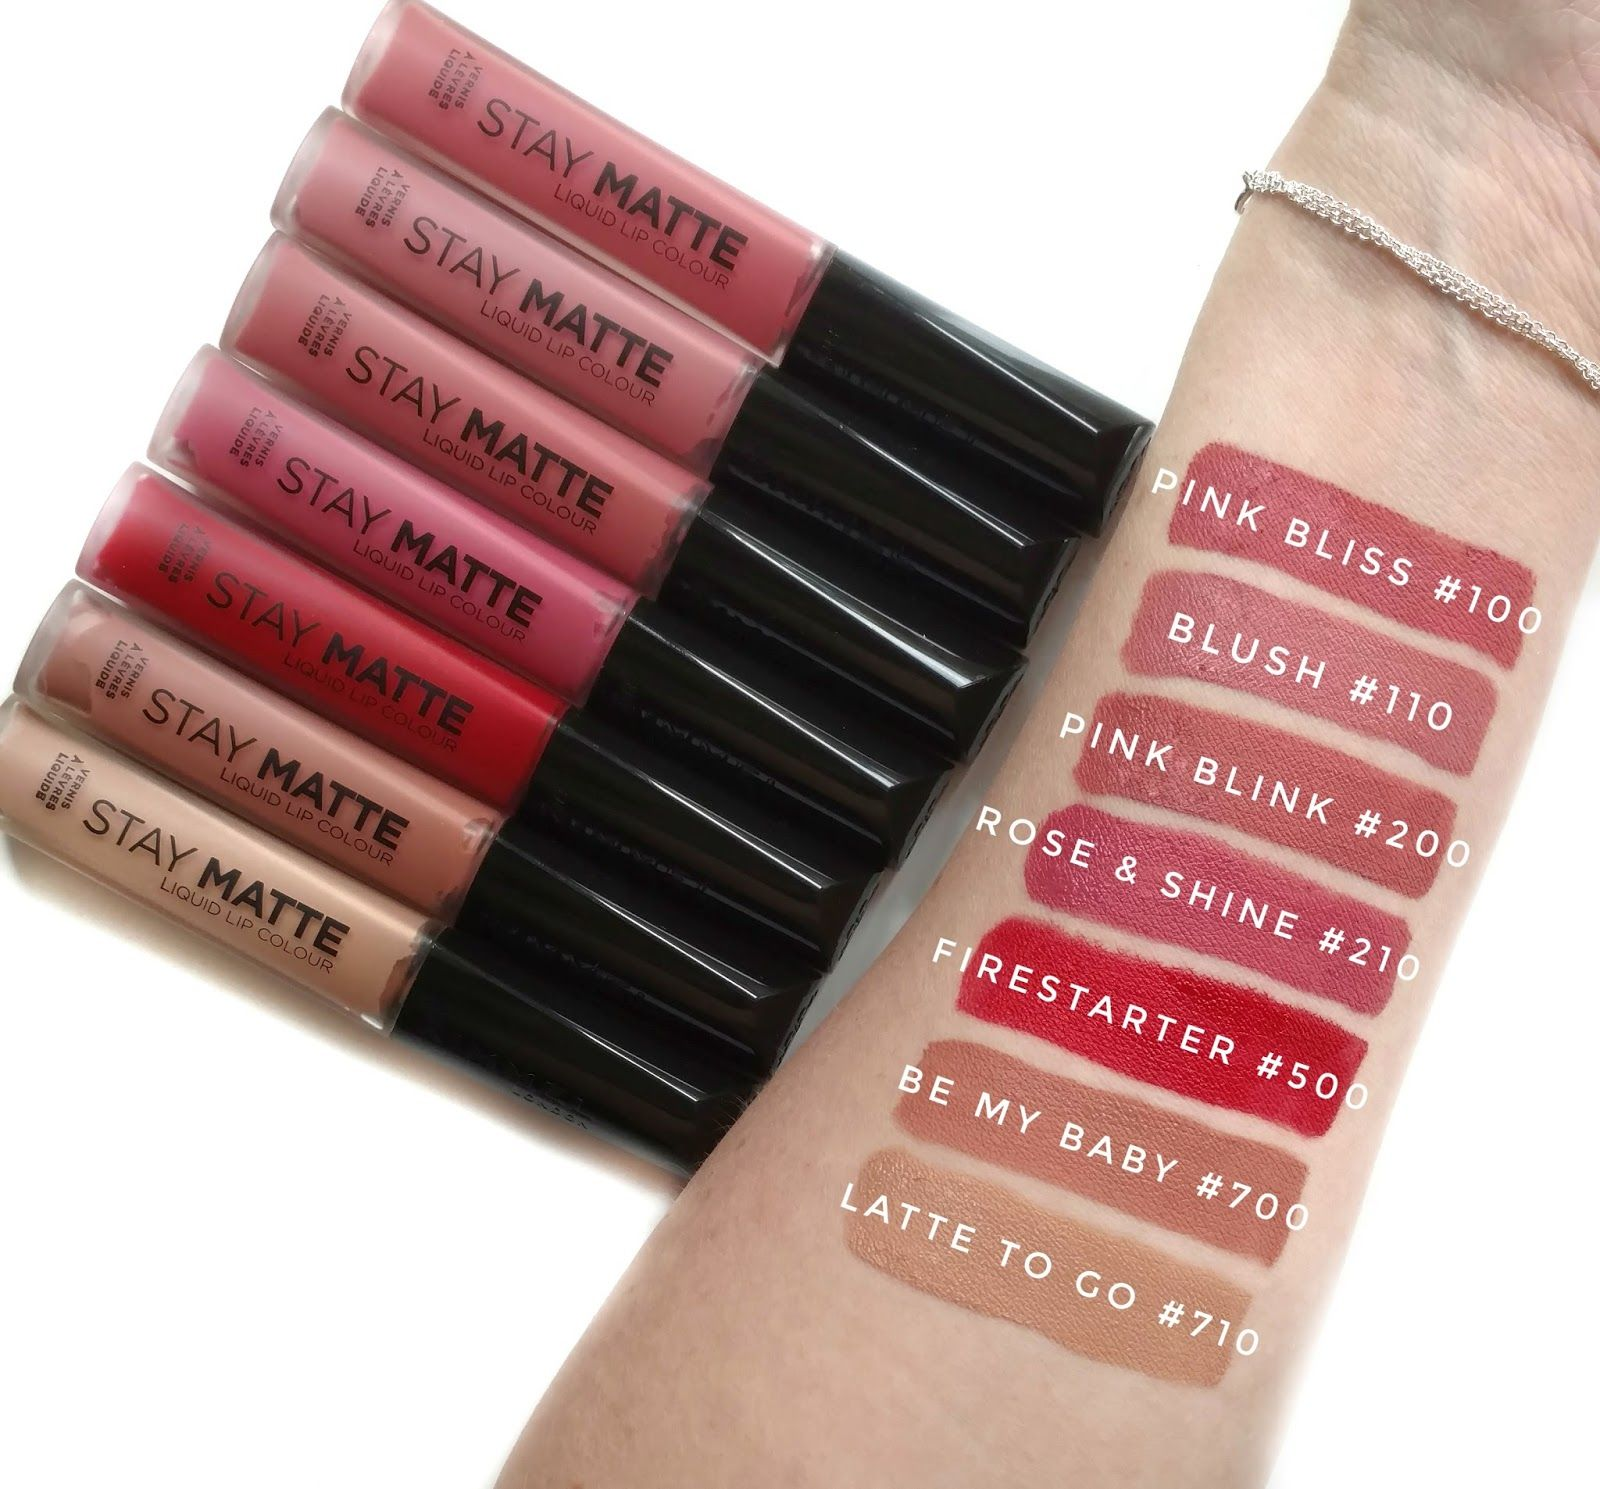 a0cd494b2e3 Rimmel London Stay Matte Liquid Lipstick swatches | Makeup Swatches ...